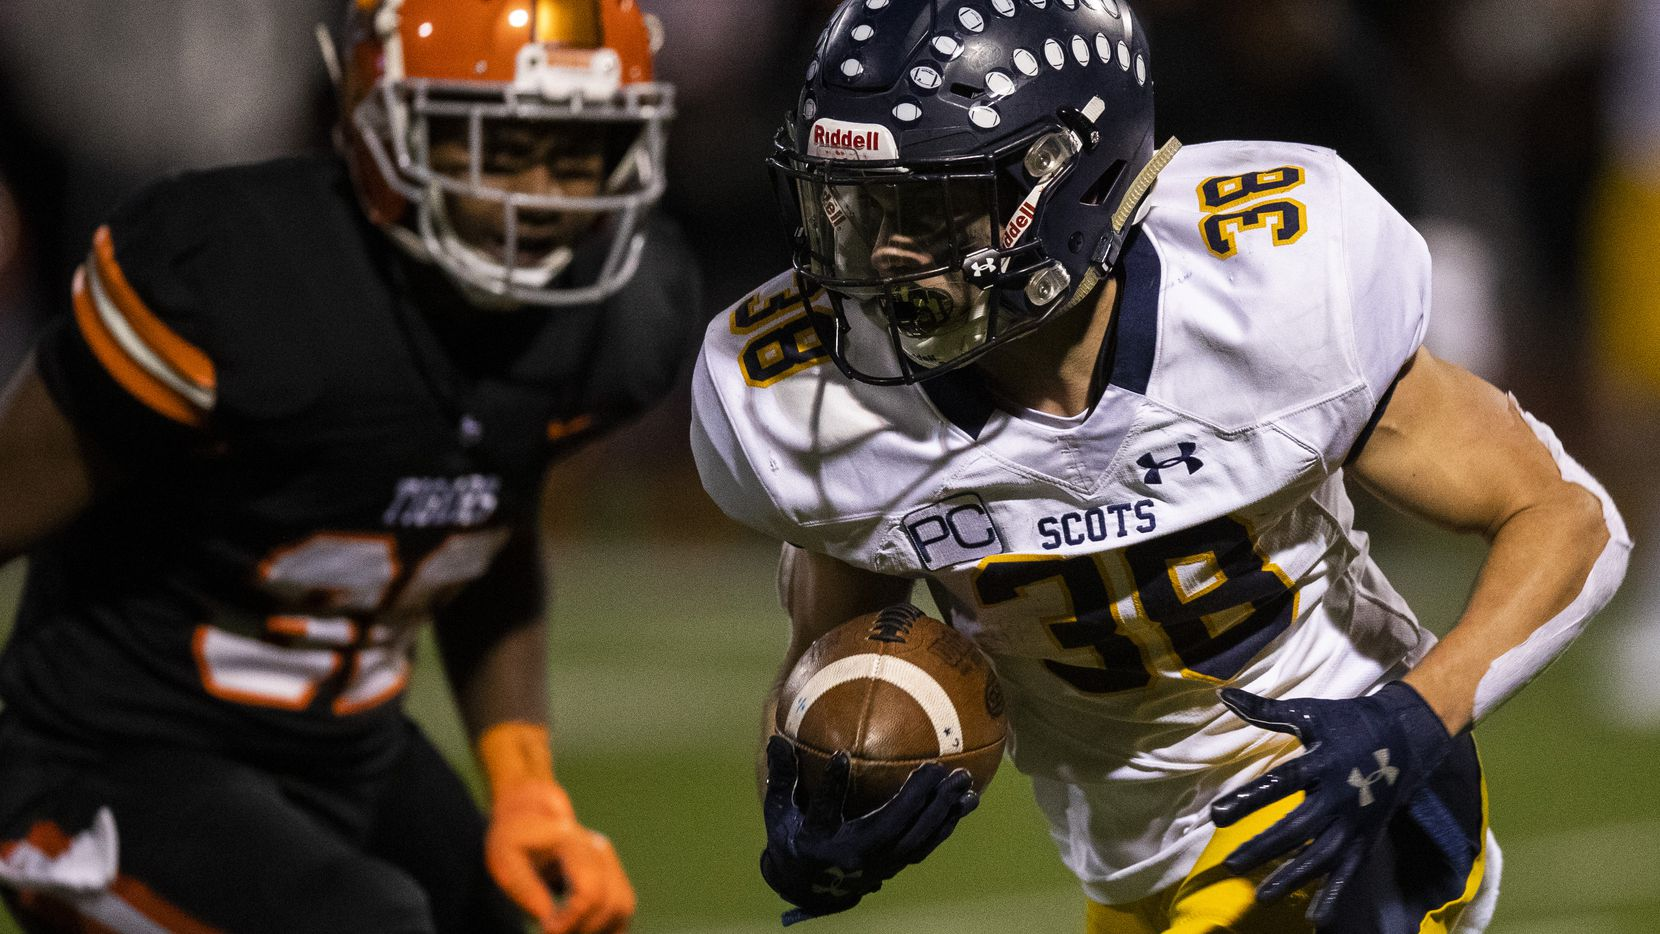 Highland Park running back Hunter Heath (38) runs the ball during the fourth quarter of a District 6-5A Division I high school football game between Highland Park and Lancaster on Friday, November 1, 2019 at Beverly D. Humphrey Tiger Stadium in Lancaster. (Ashley Landis/The Dallas Morning News)